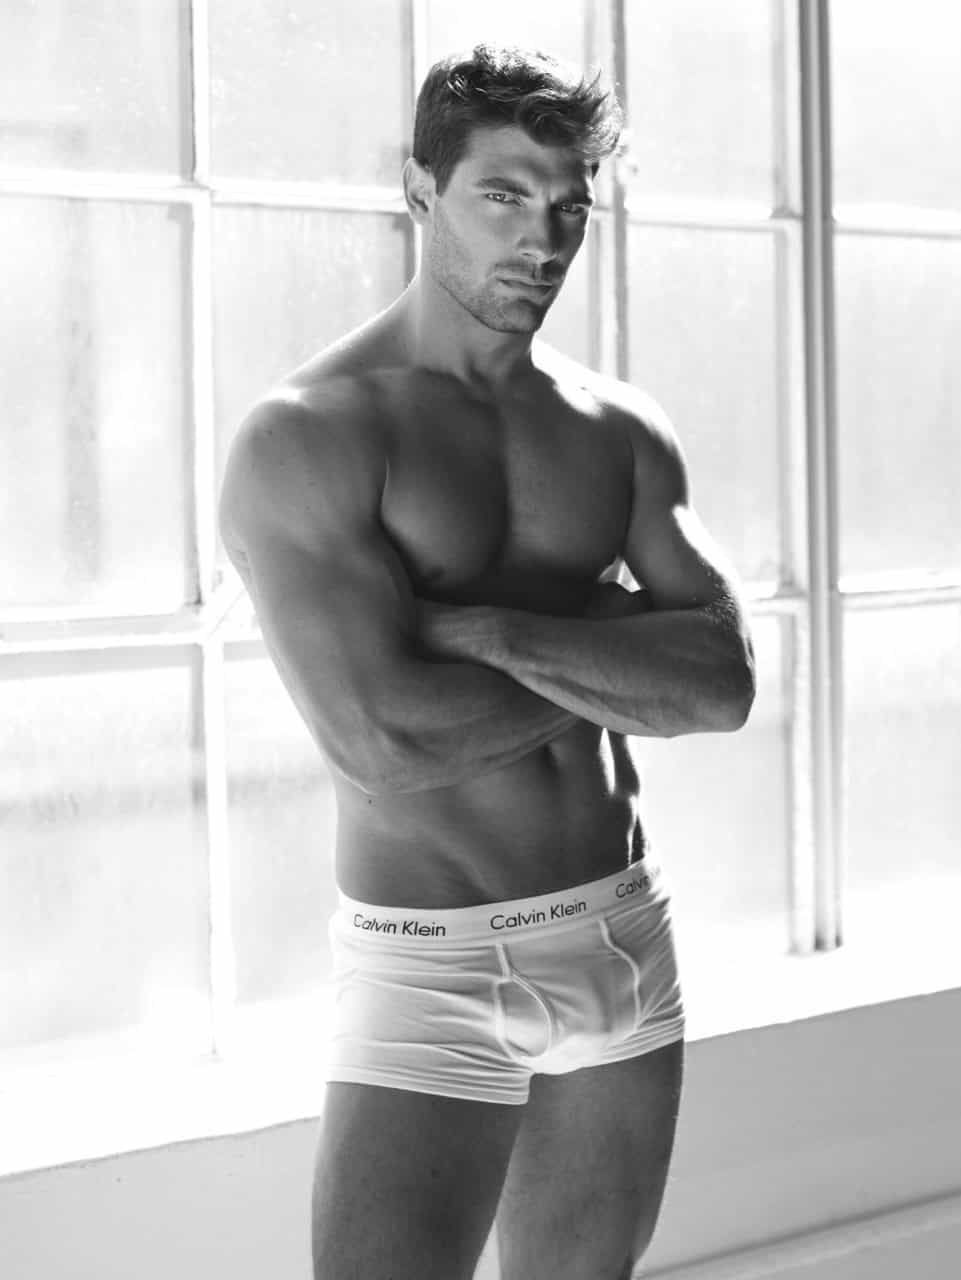 Calvin Klein Underwear Model  Fit Males Shirtless  Naked-4267